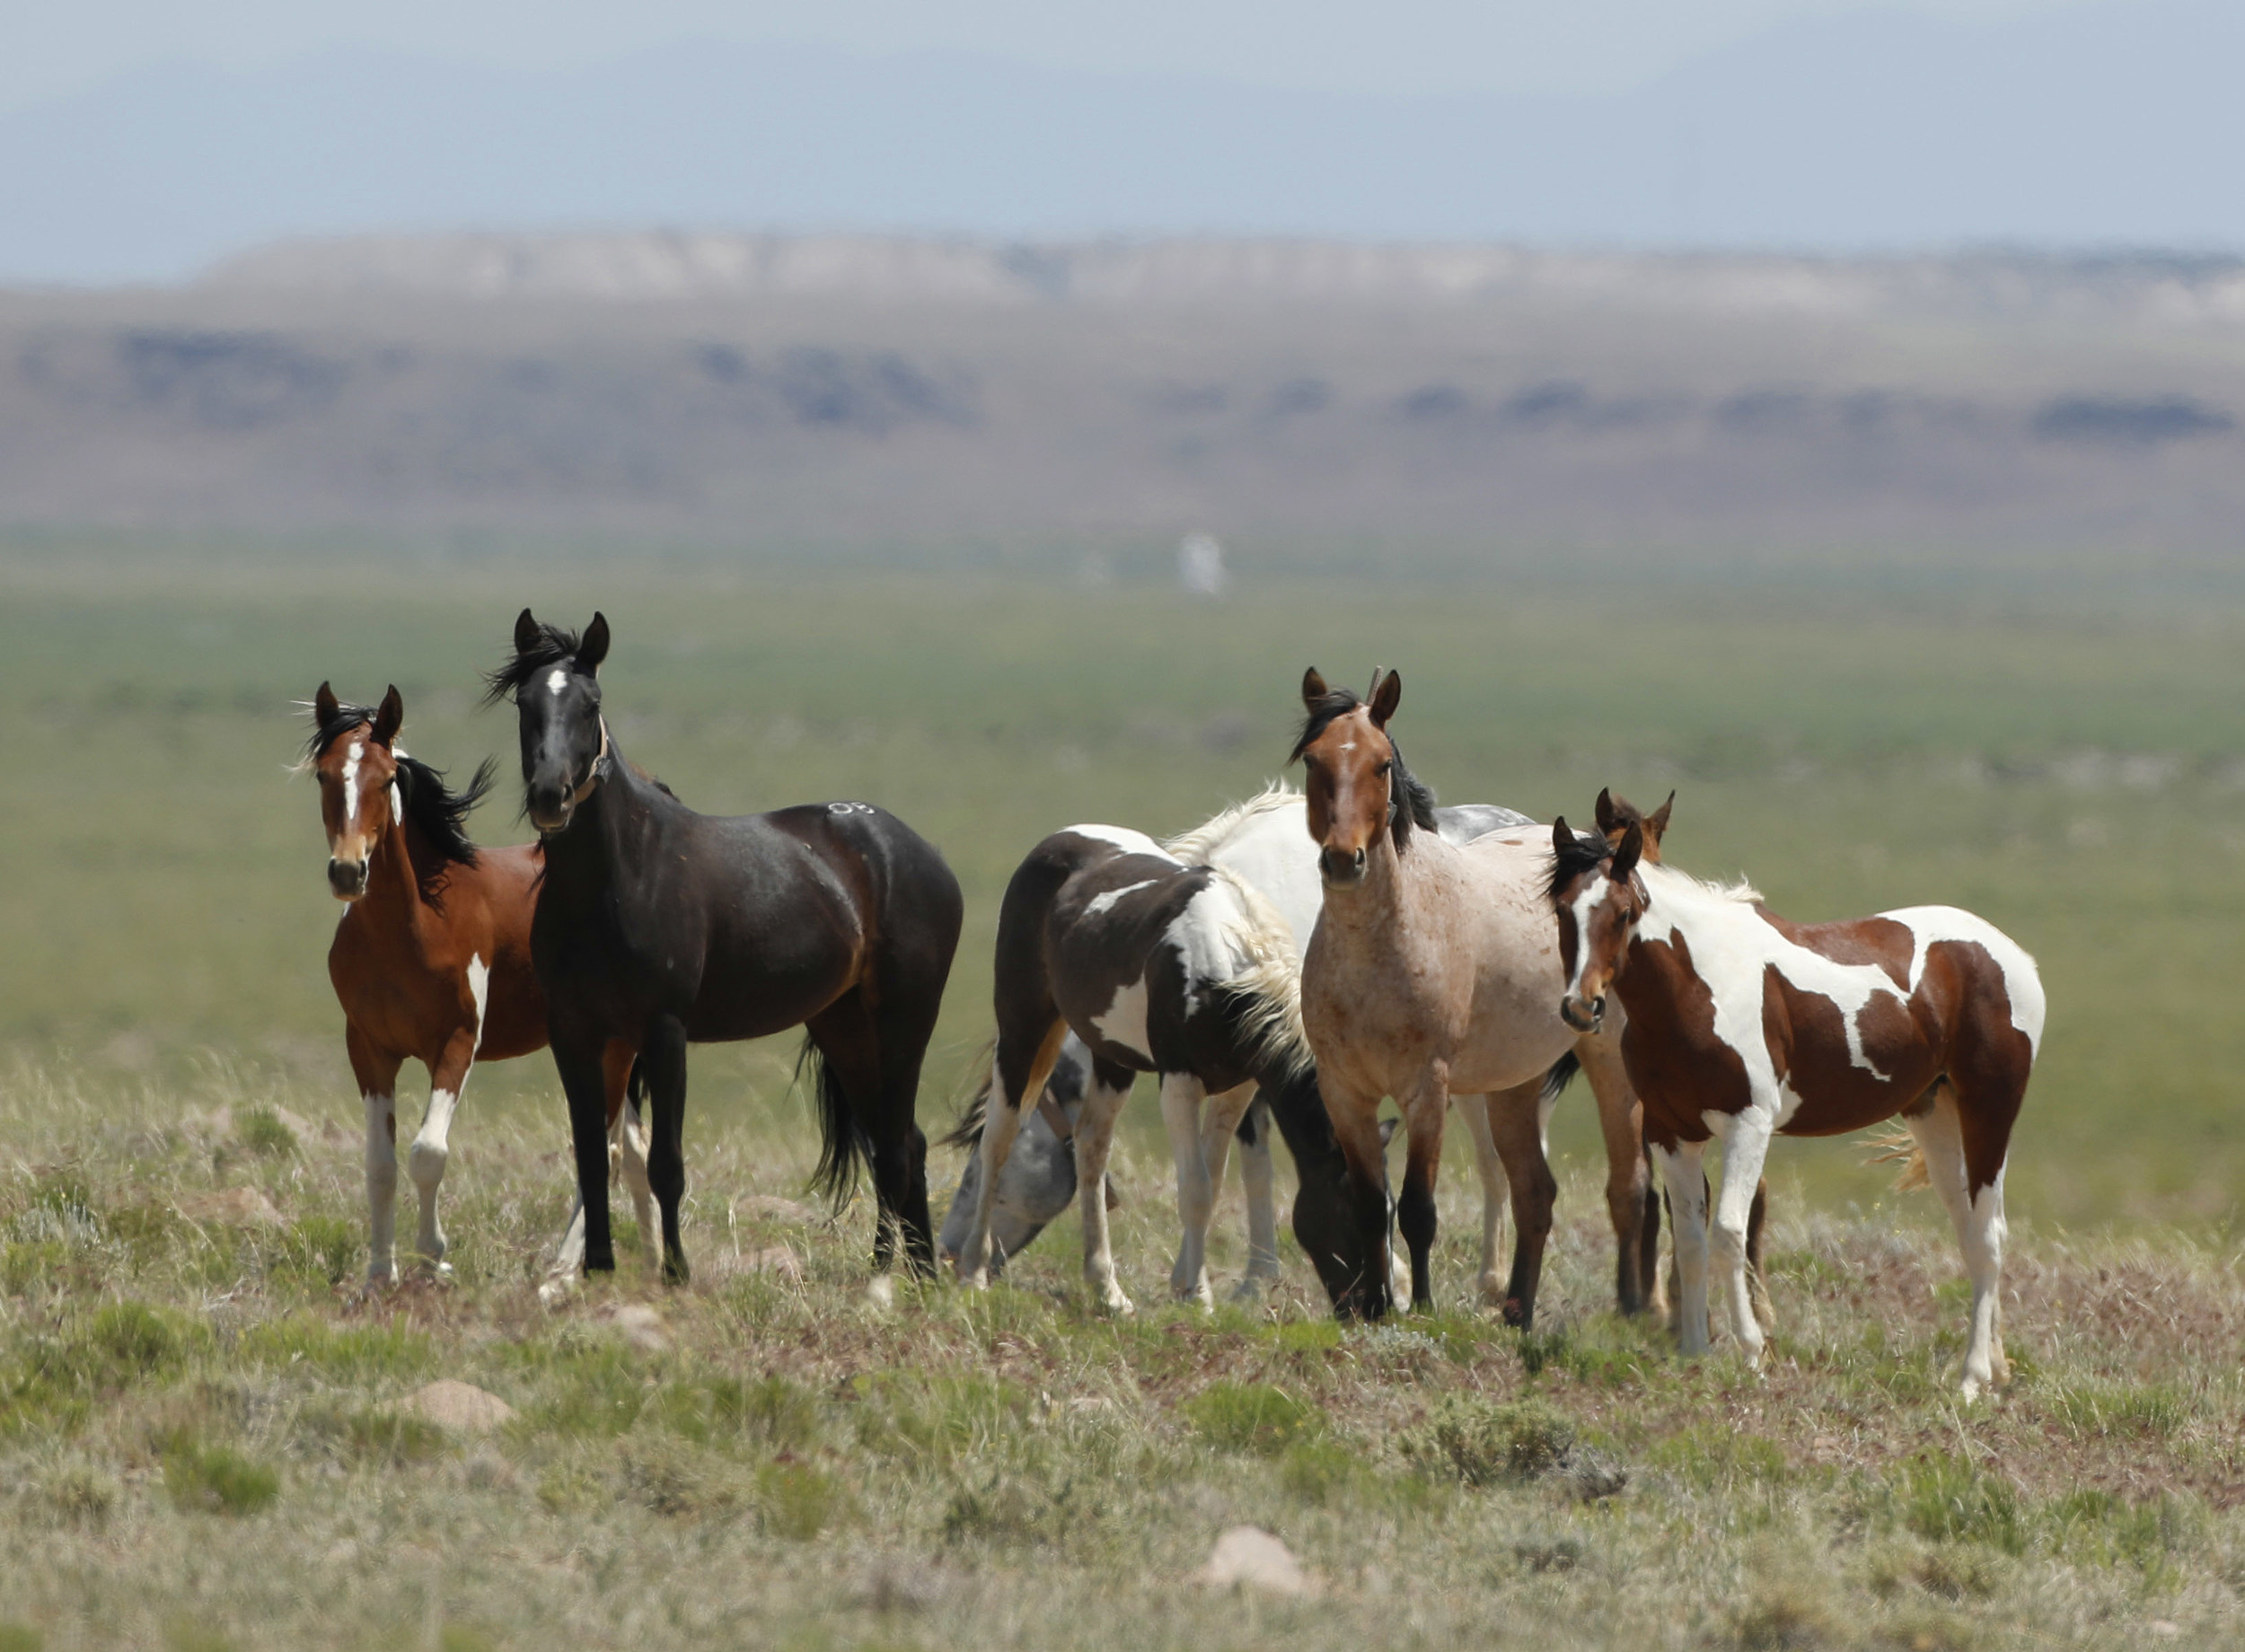 Blm Planning To Remove Wild Horses In Northwest Wyoming This Fall